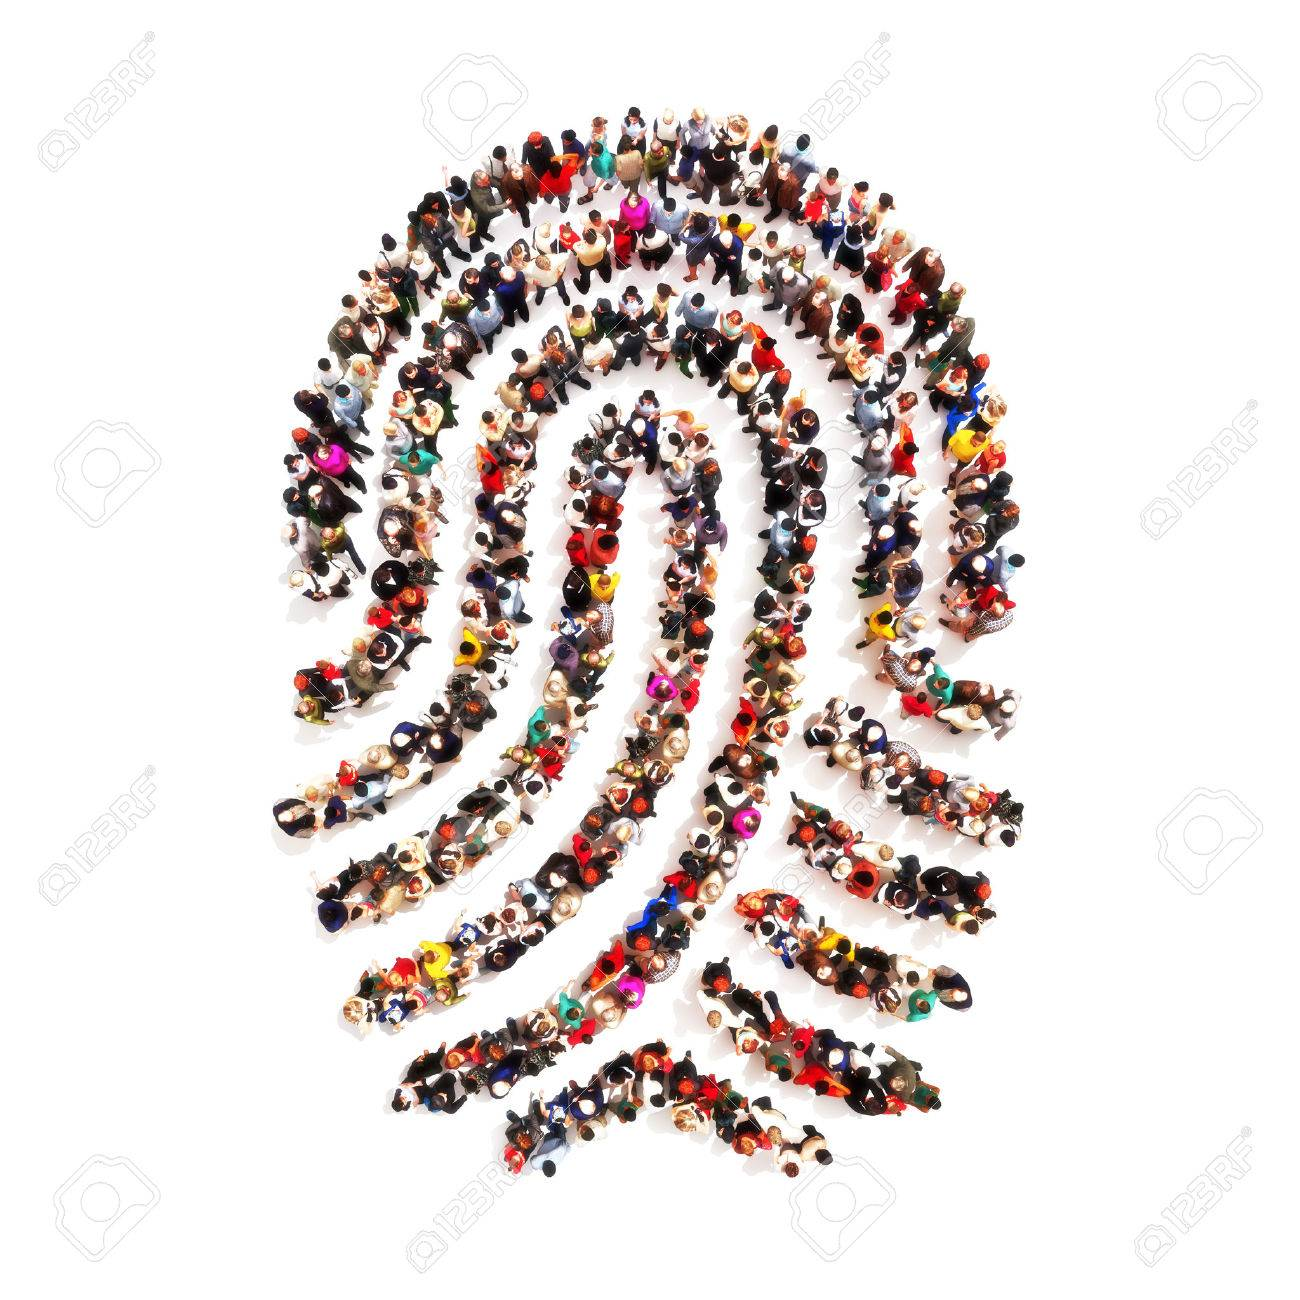 Large group pf people in the shape of a fingerprint on an isolated white background. People finding there identity, identity theft, individuality concept. - 47415009